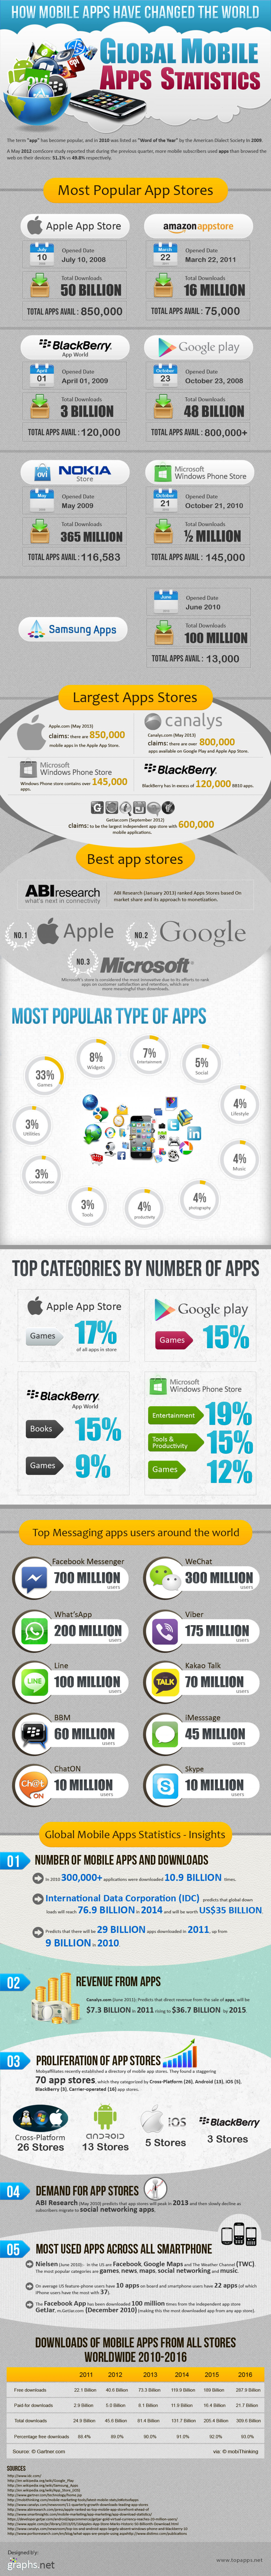 Mobile Apps Global Statistics Infographic